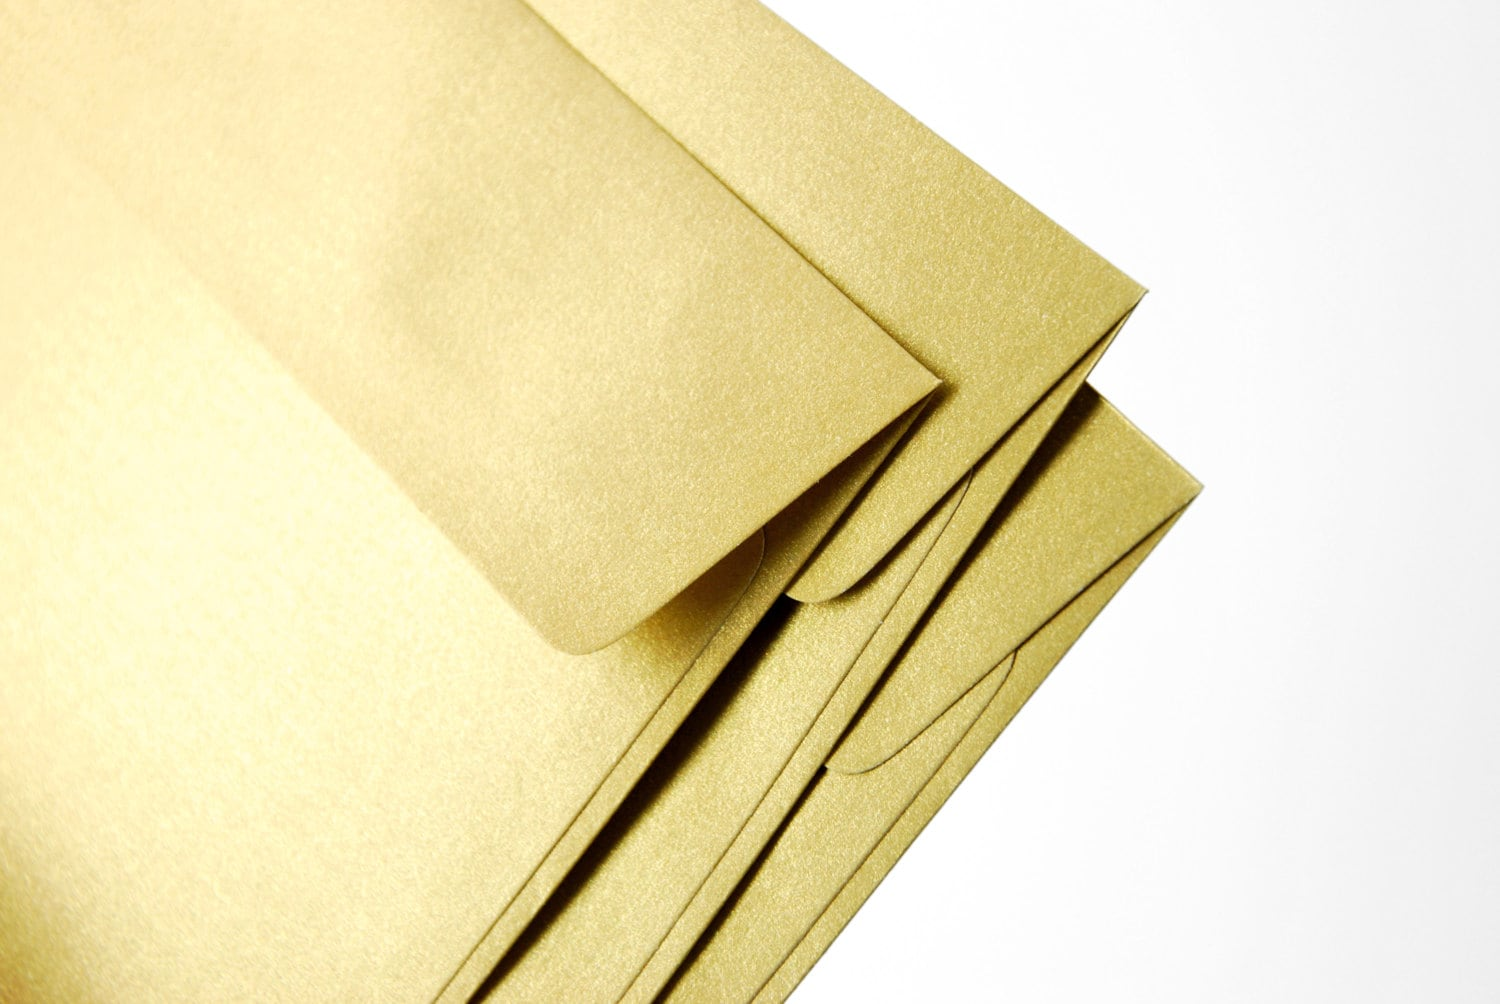 A7 5x7 Gold Envelopes Perfect for 5x7 wedding